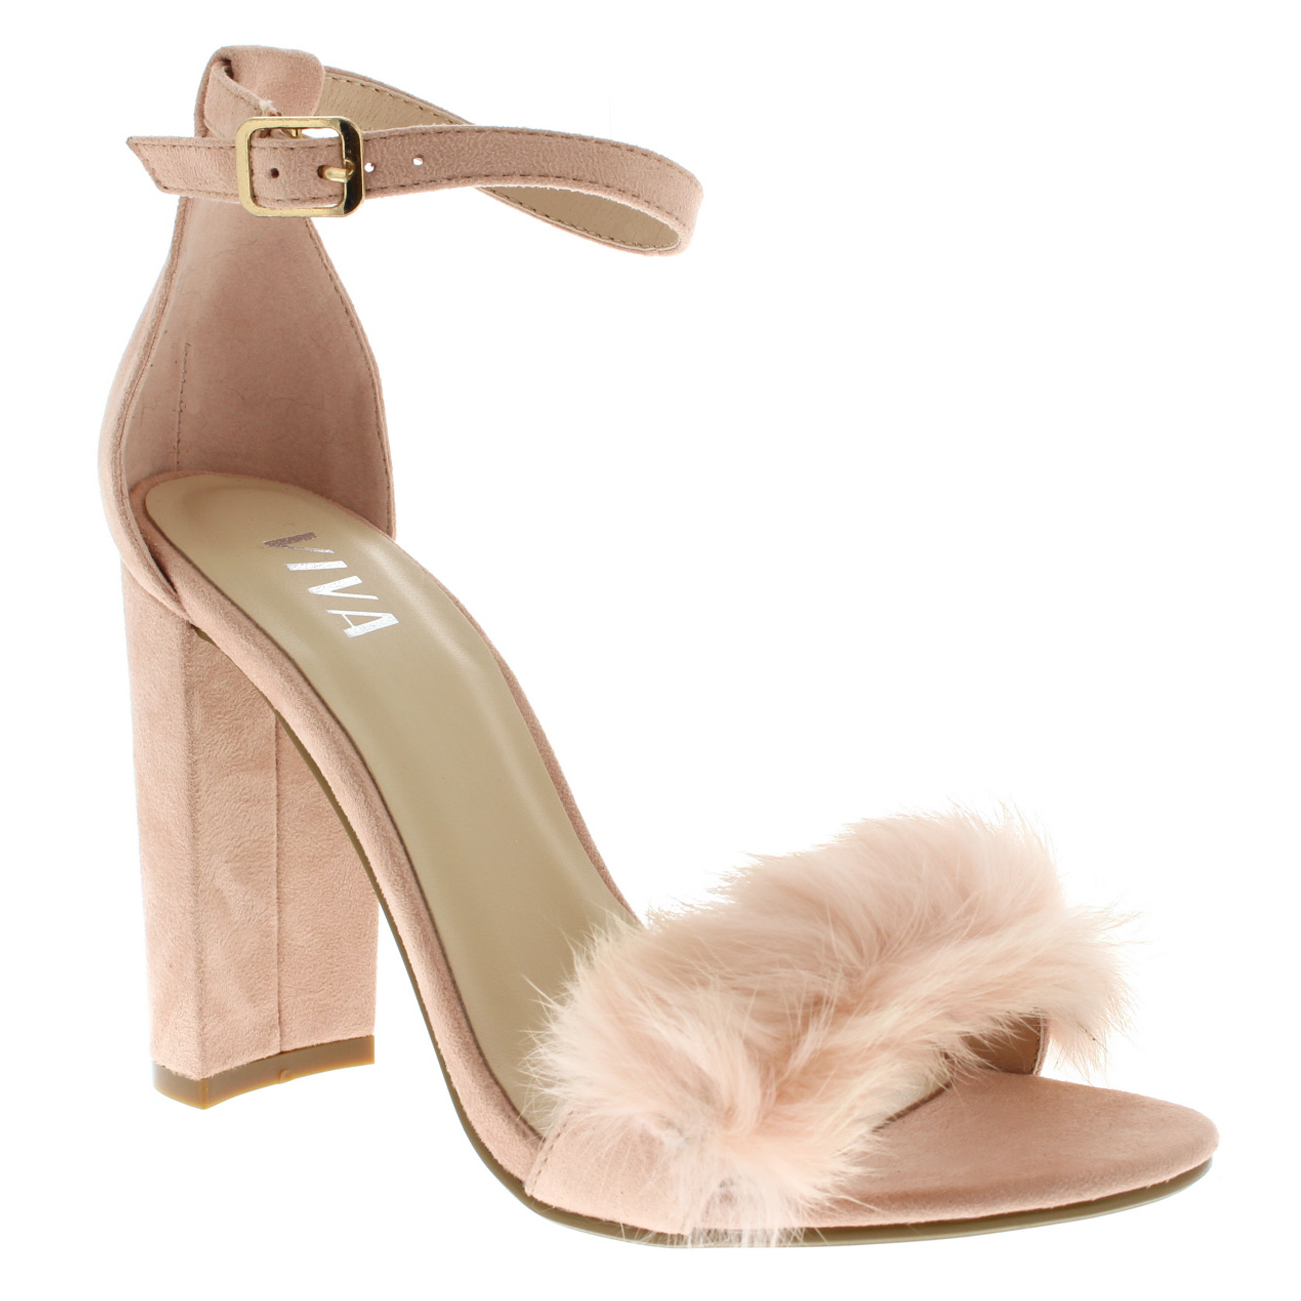 f1a5d1af78e Ladies Evening Block Heel Fashion Cut Out Party High Heels Fluffy Pumps